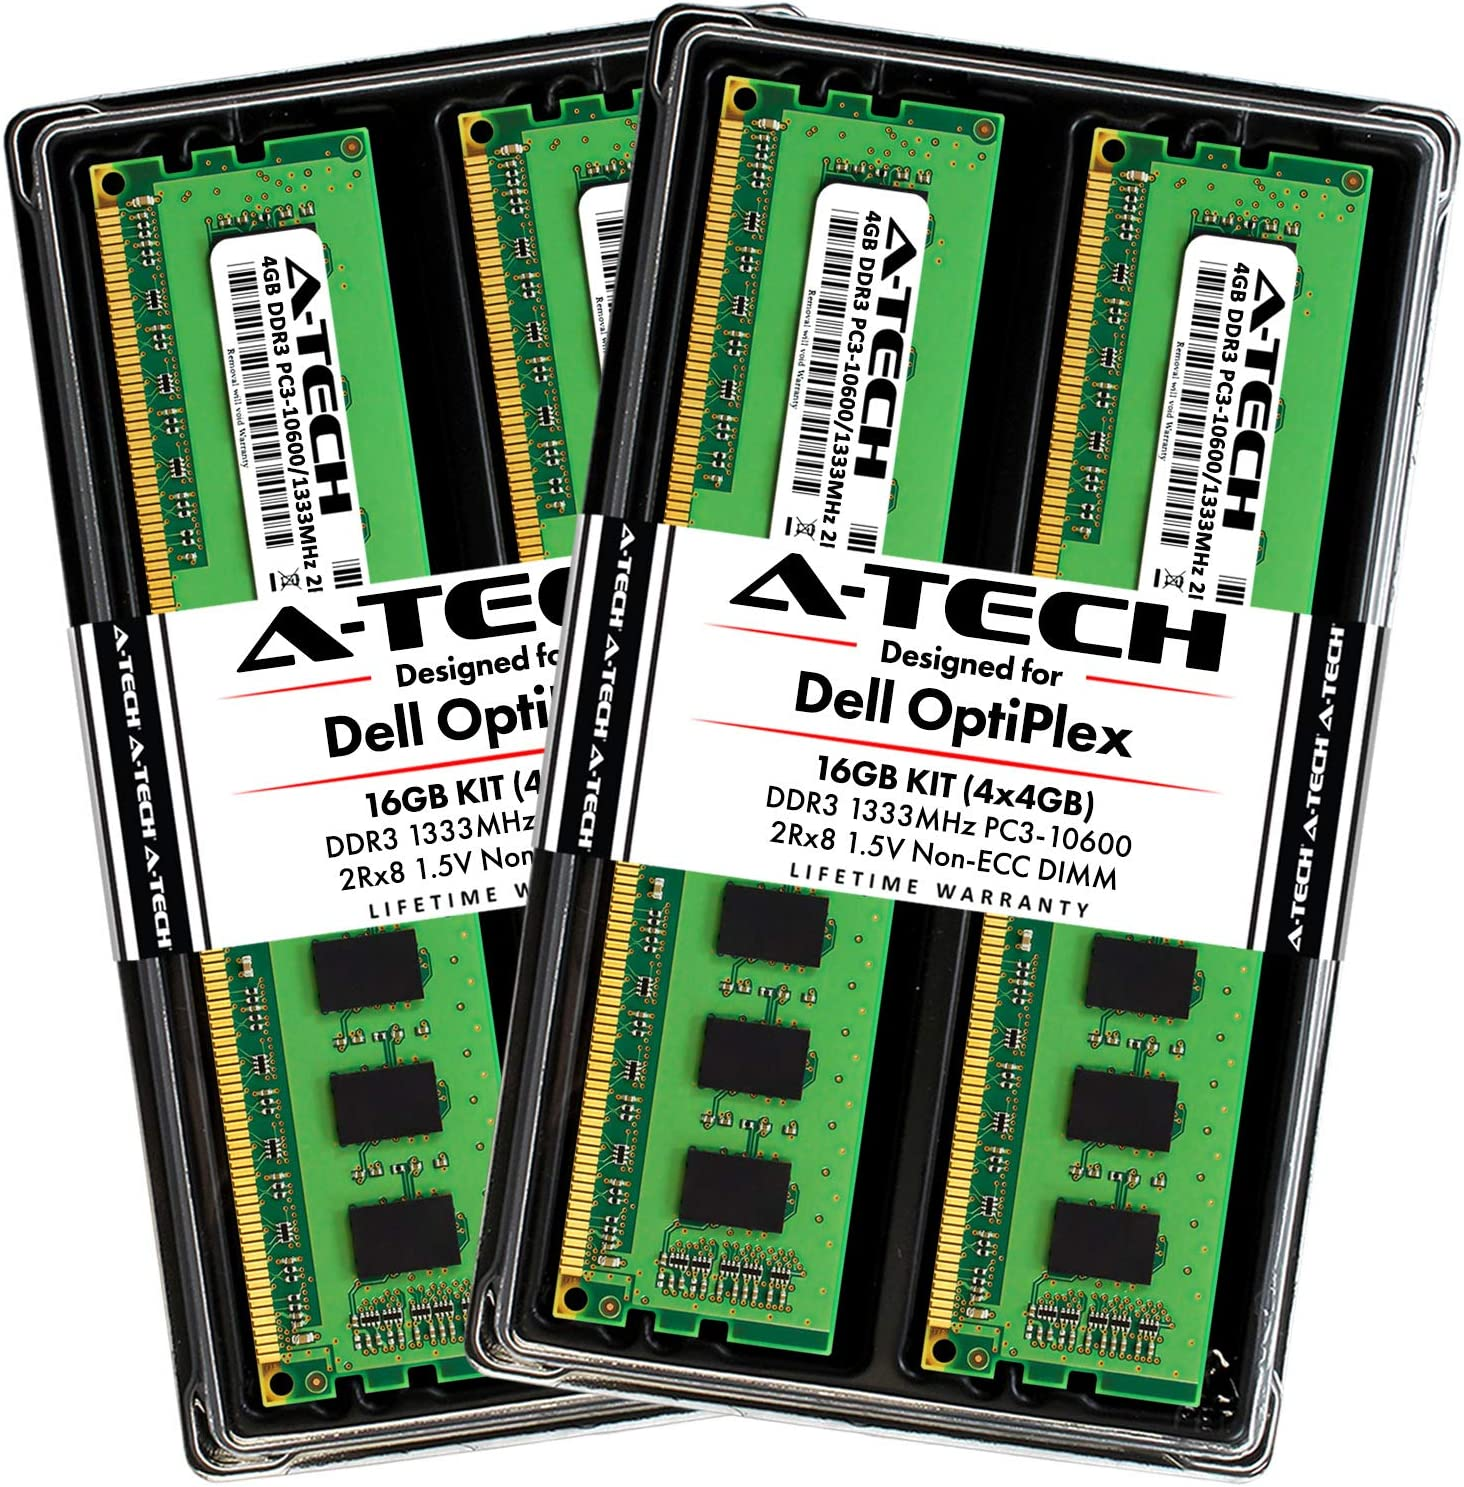 A-Tech 16GB RAM Kit for Dell OptiPlex 9010, 7900, 7010, 990, 980, 790, MT/DT/SFF - (4 x 4GB) DDR3 1333MHz PC3-10600 Non-ECC DIMM Memory Upgrade